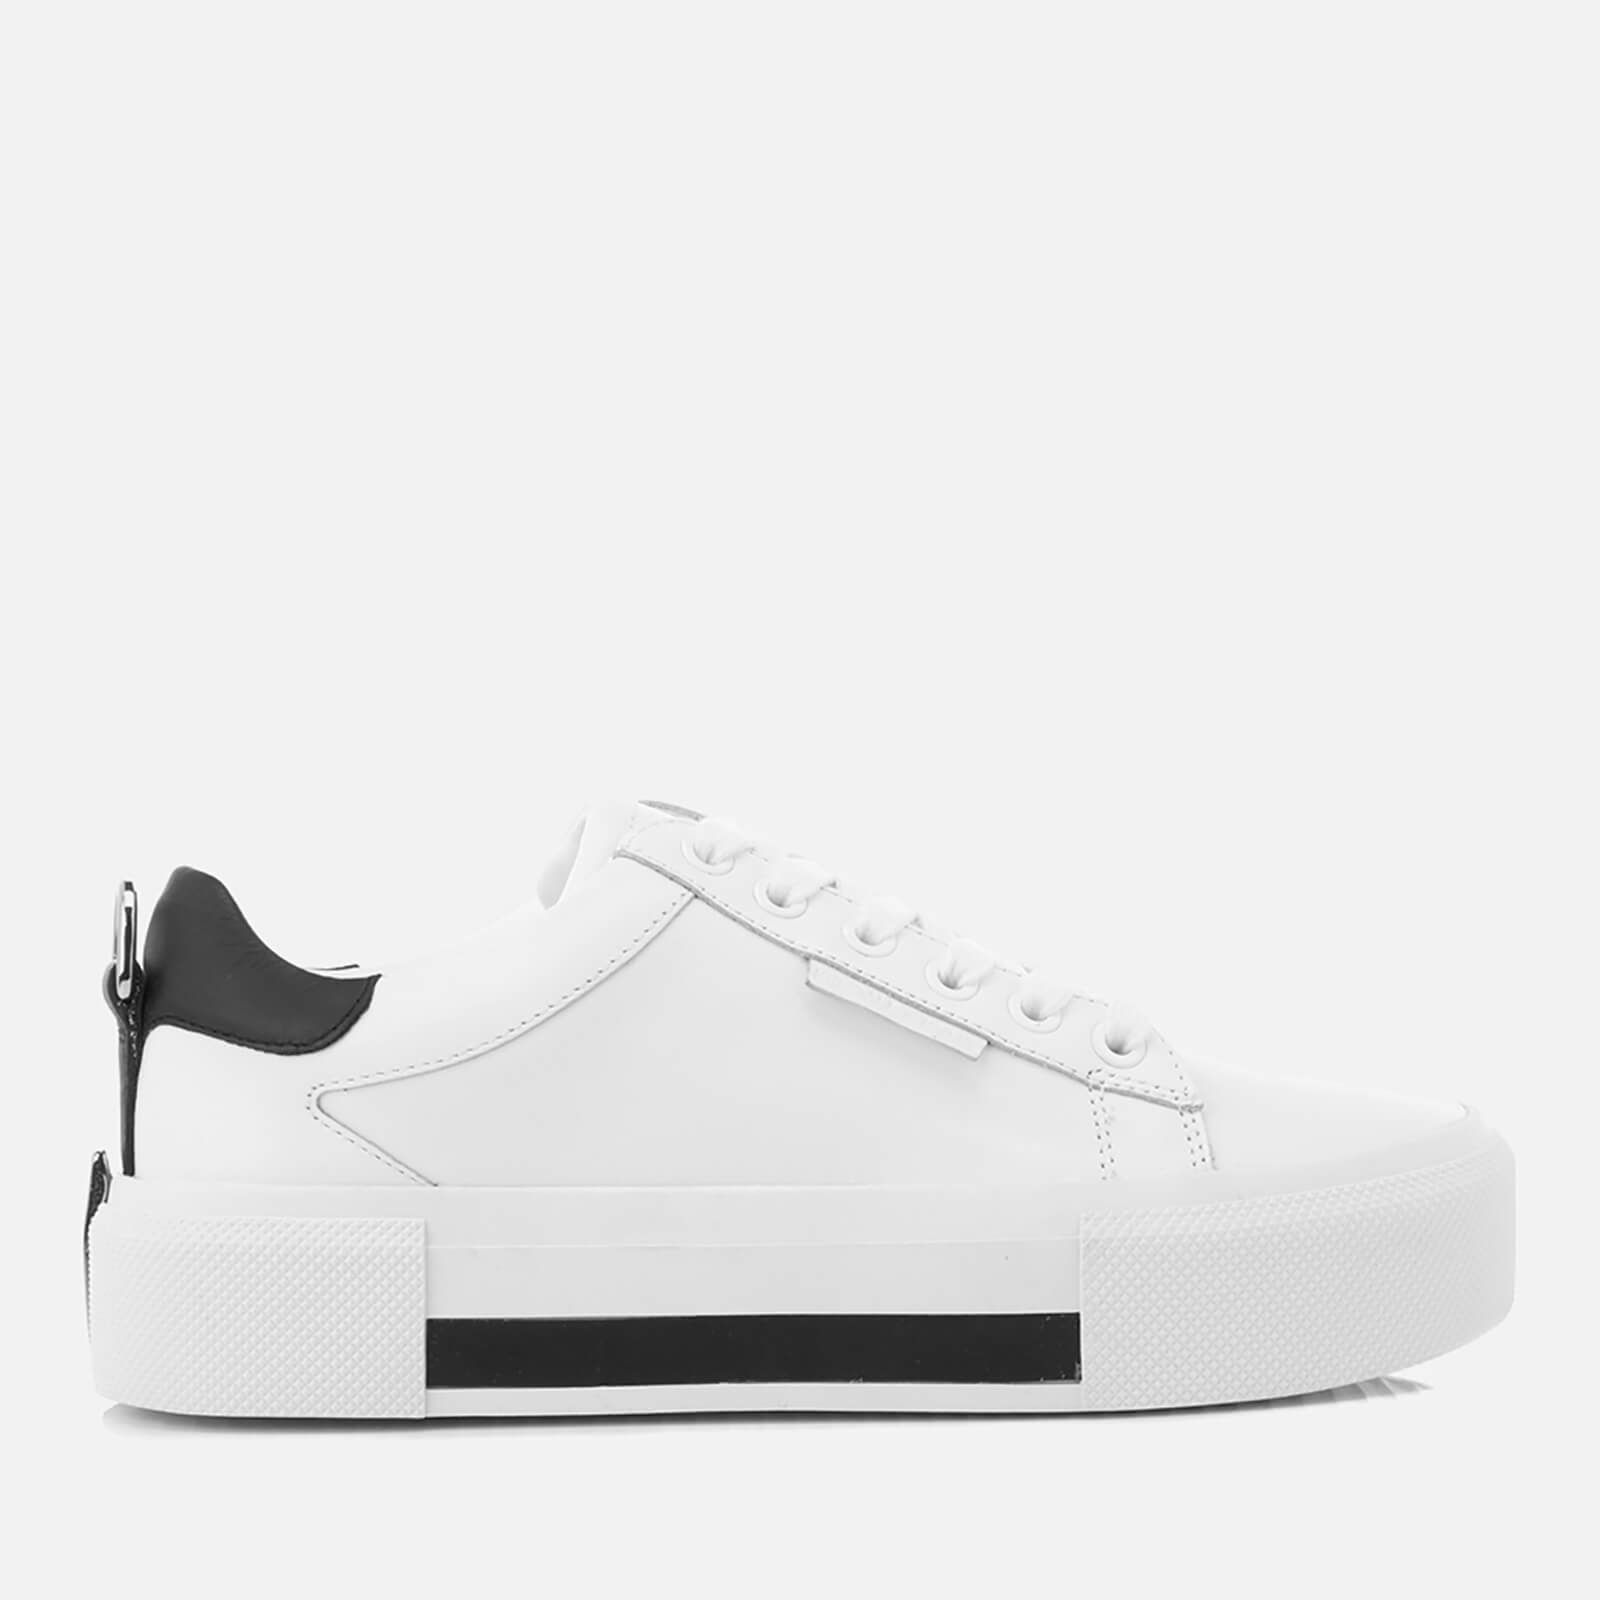 81987aefc Kendall + Kylie Women's Tyler Leather Flatform Trainers - White/Black |  FREE UK Delivery | Allsole